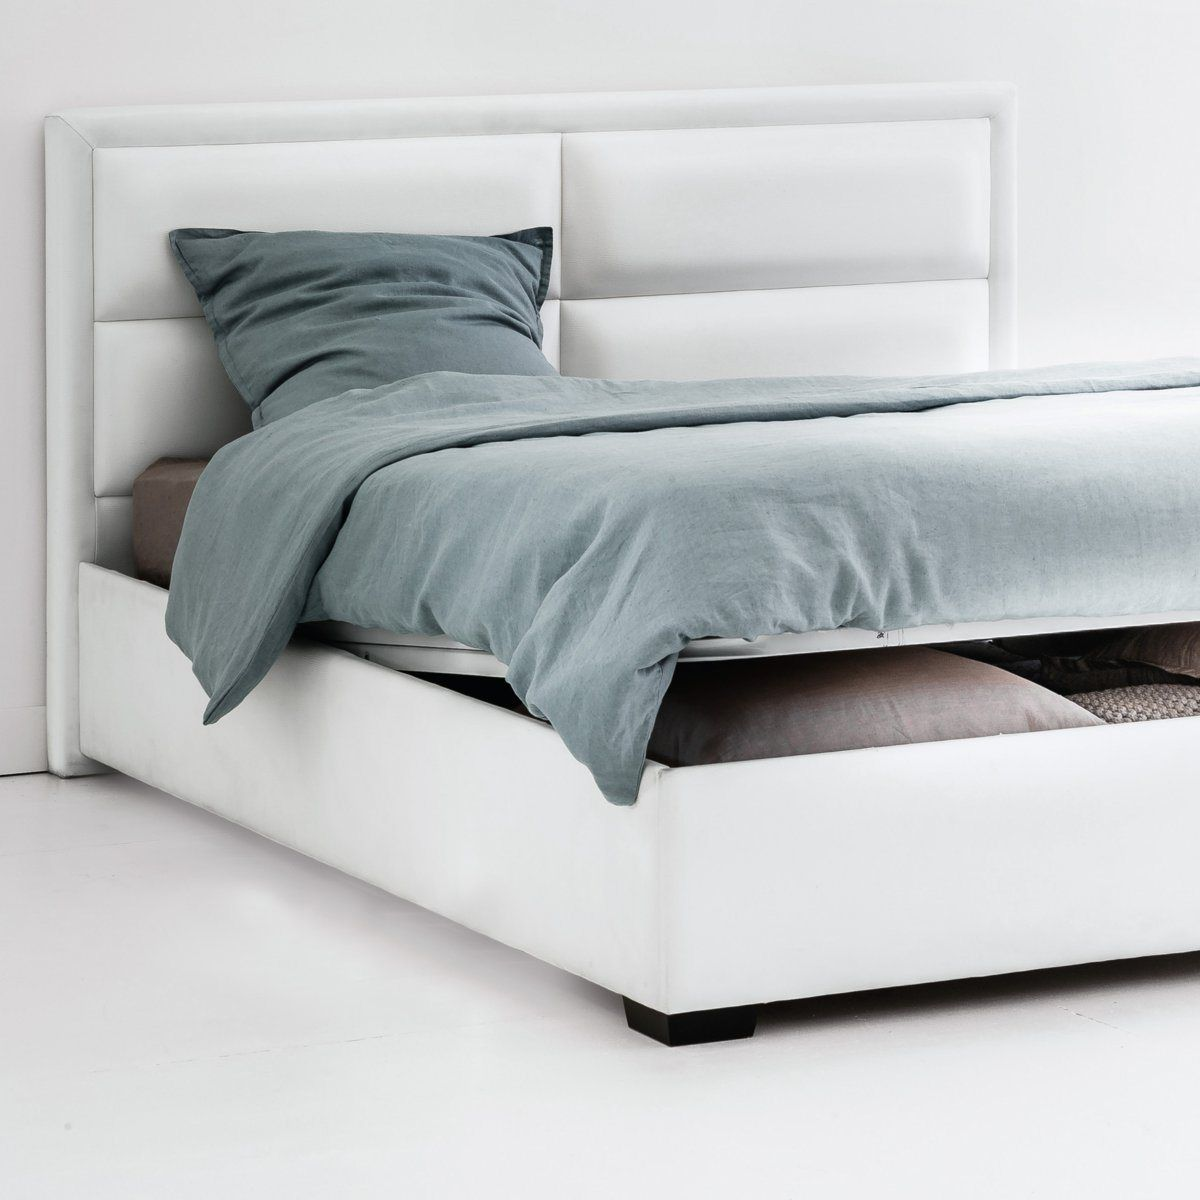 Cadre De Lit La Redoute Lit Relevable Blax Soldes Pinterest Bedroom Bed Et New Homes